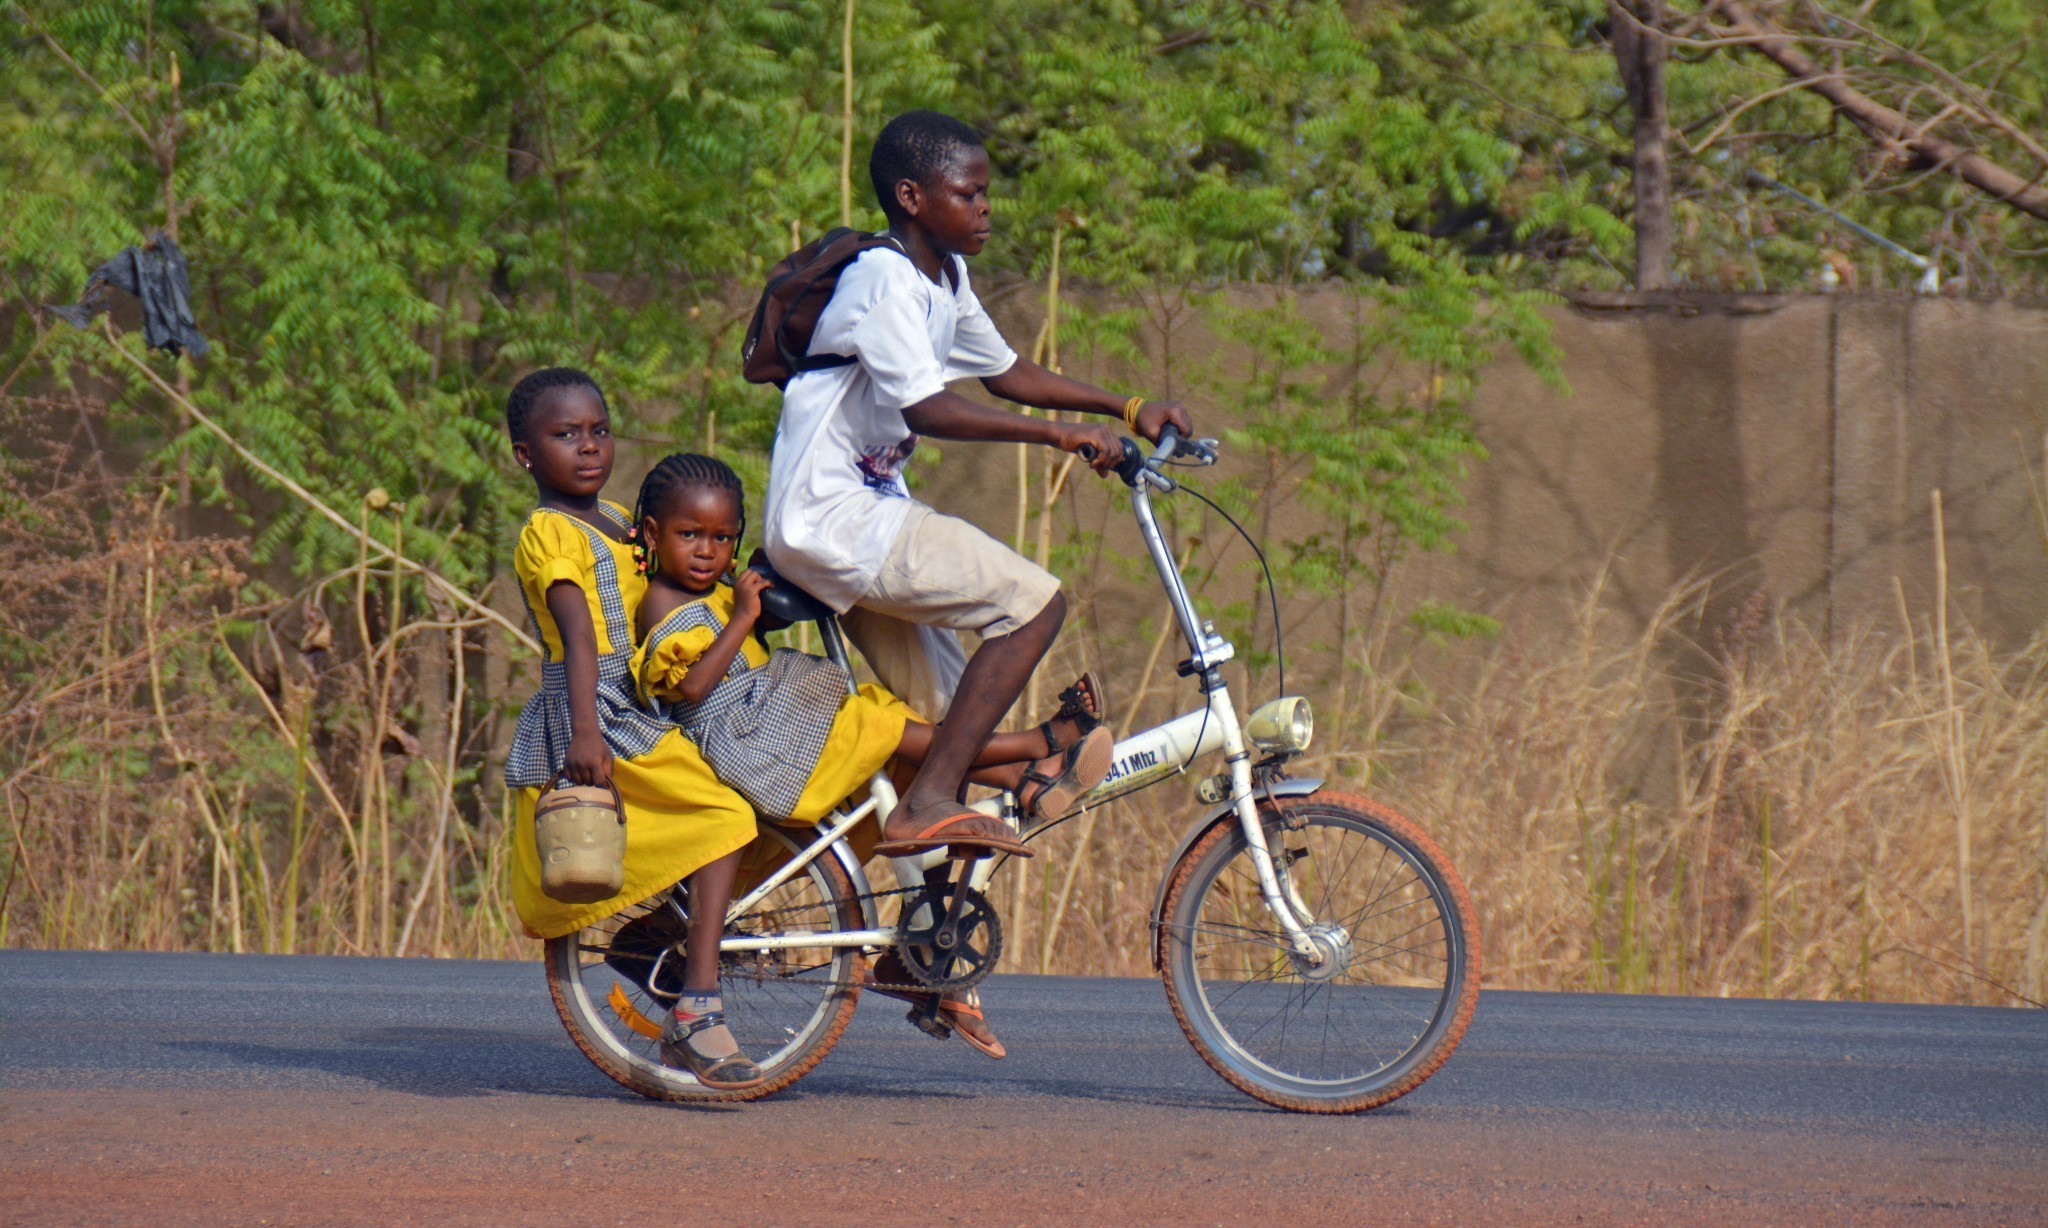 'I can pedal faster than a man can run' – how bikes are changing the dynamic on Africa's roads